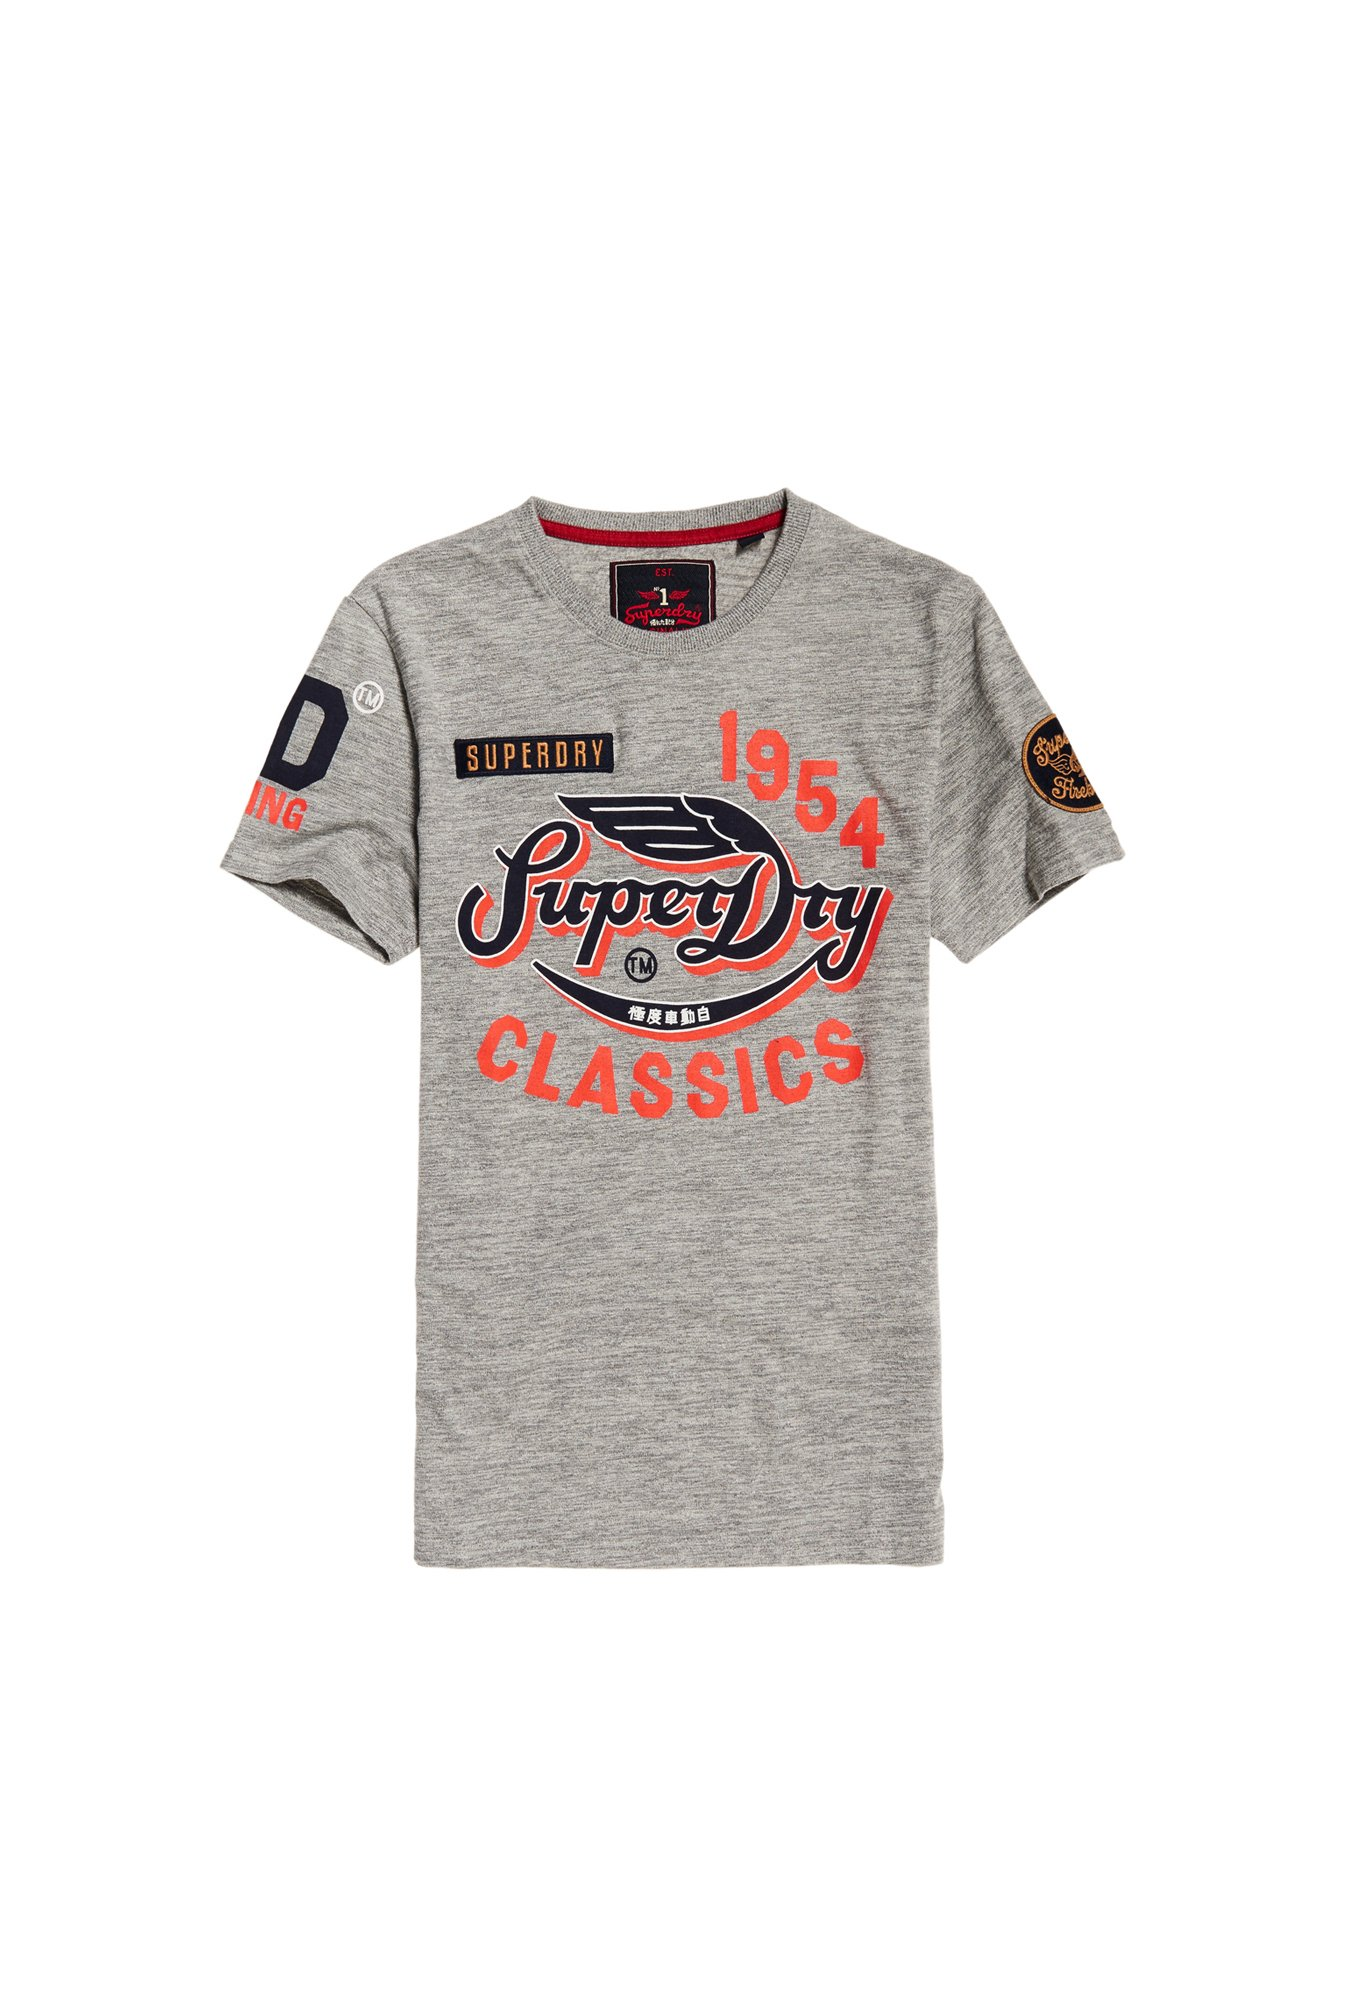 Superdry Grey Printed T-Shirt